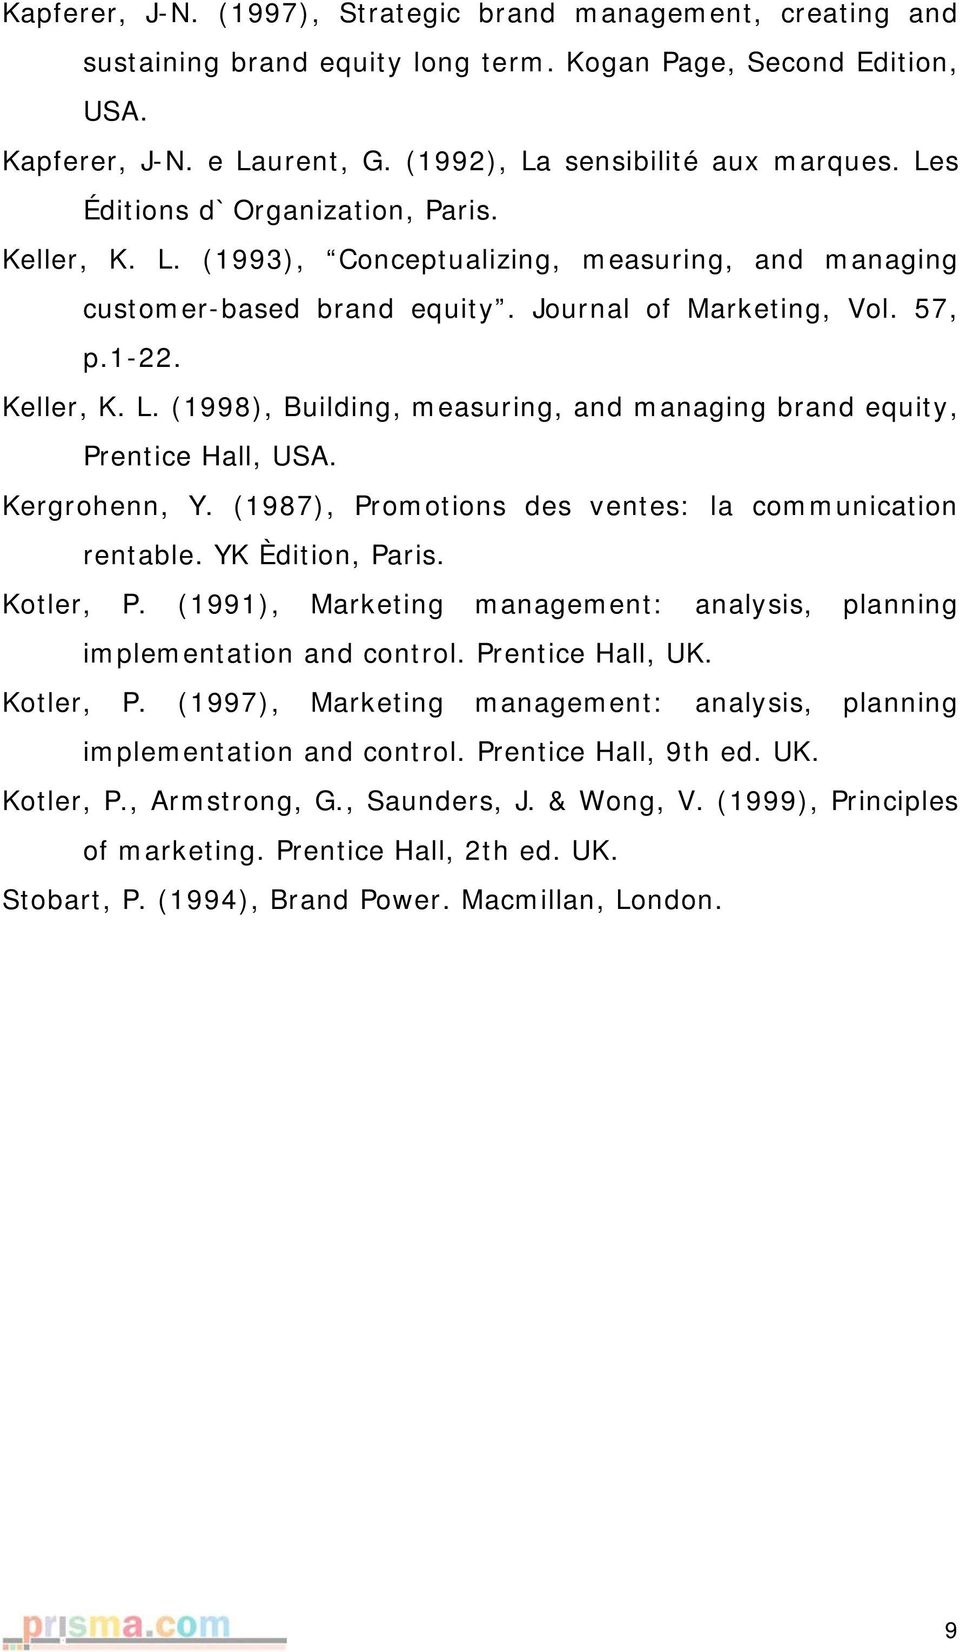 Kergrohenn, Y. (1987), Promotions des ventes: la communication rentable. YK Èdition, Paris. Kotler, P. (1991), Marketing management: analysis, planning implementation and control. Prentice Hall, UK.